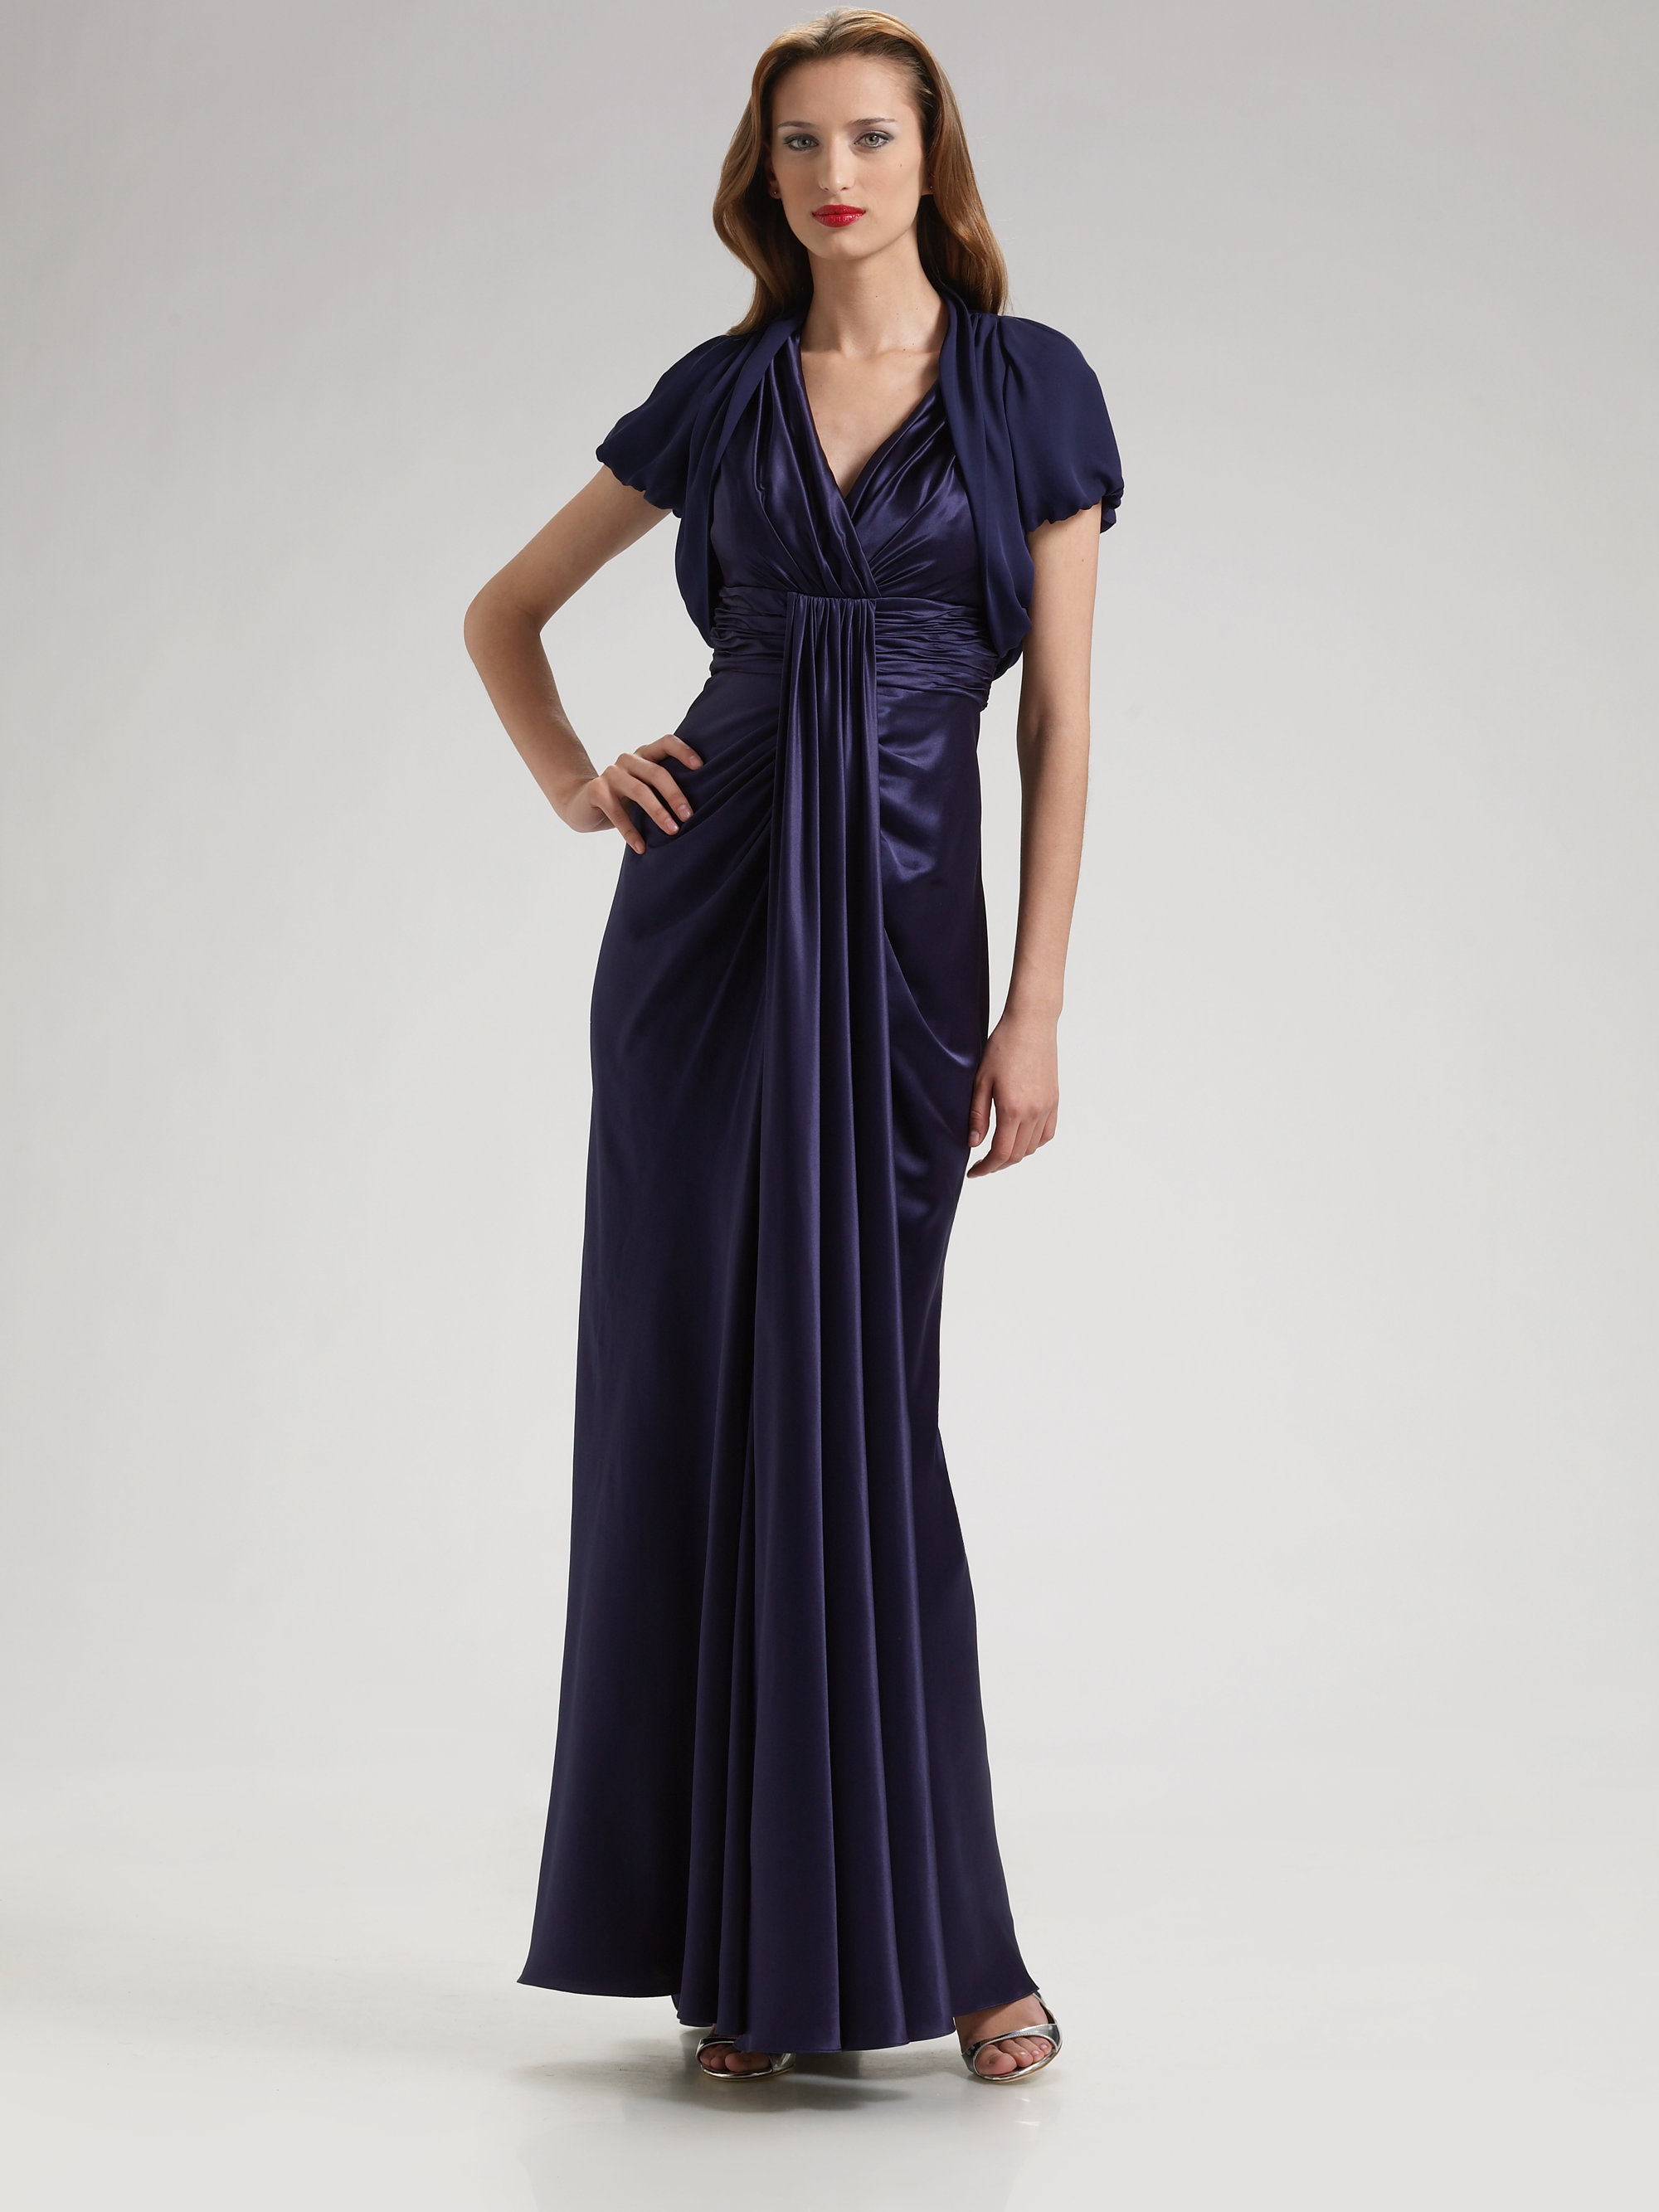 2cb6d87785e Old Fashioned Silk Charmeuse Gown Ensign - Top Wedding Gowns ...